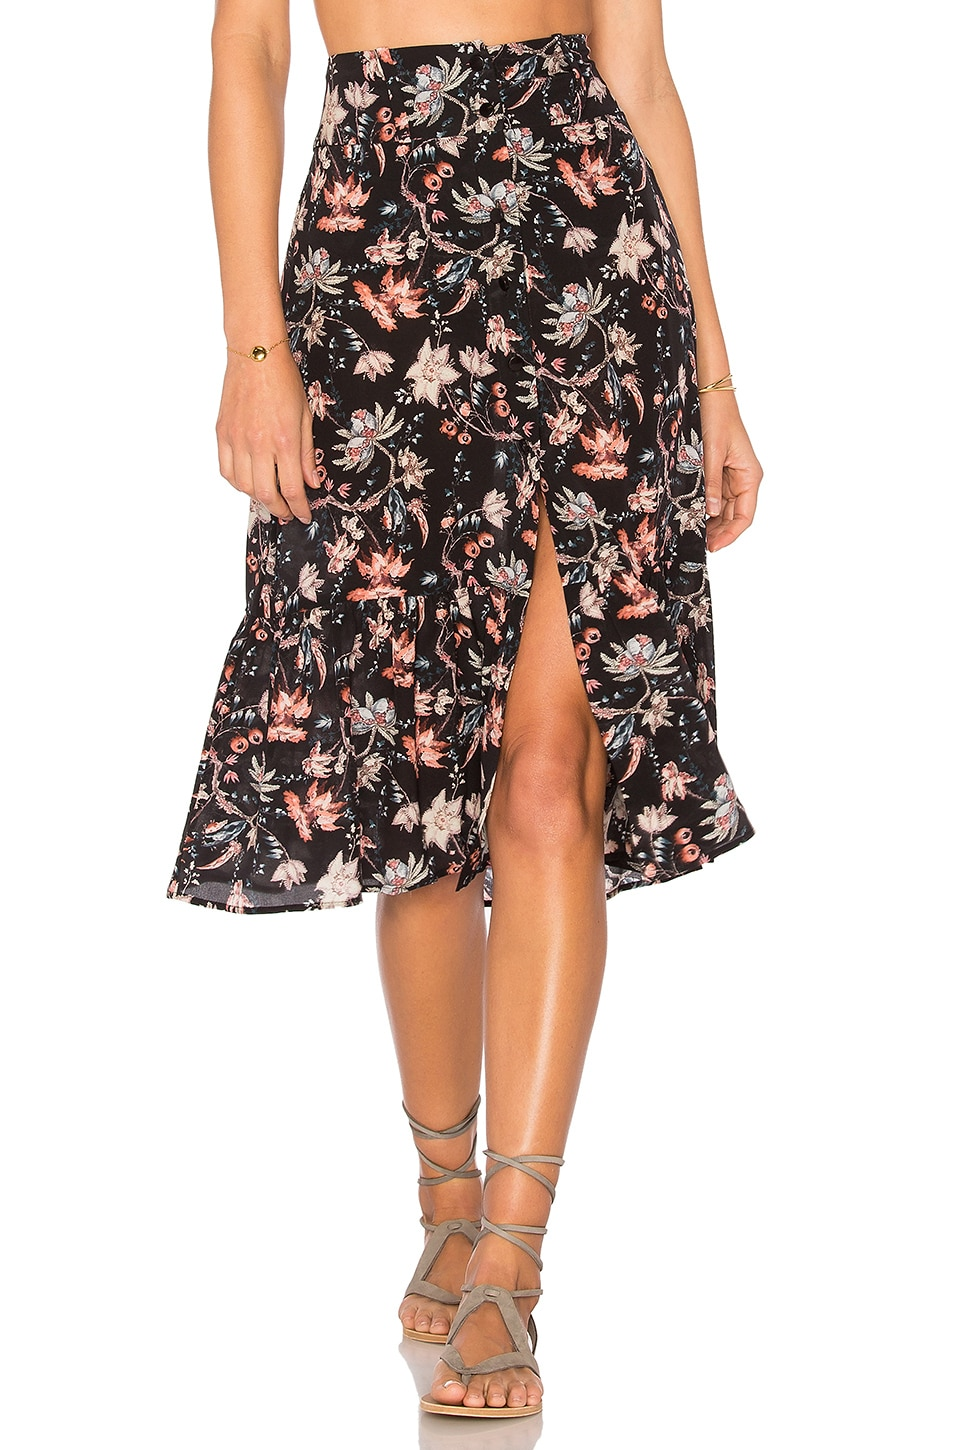 ADRIANA DEGREAS Chinoiserie Midi Skirt in Black